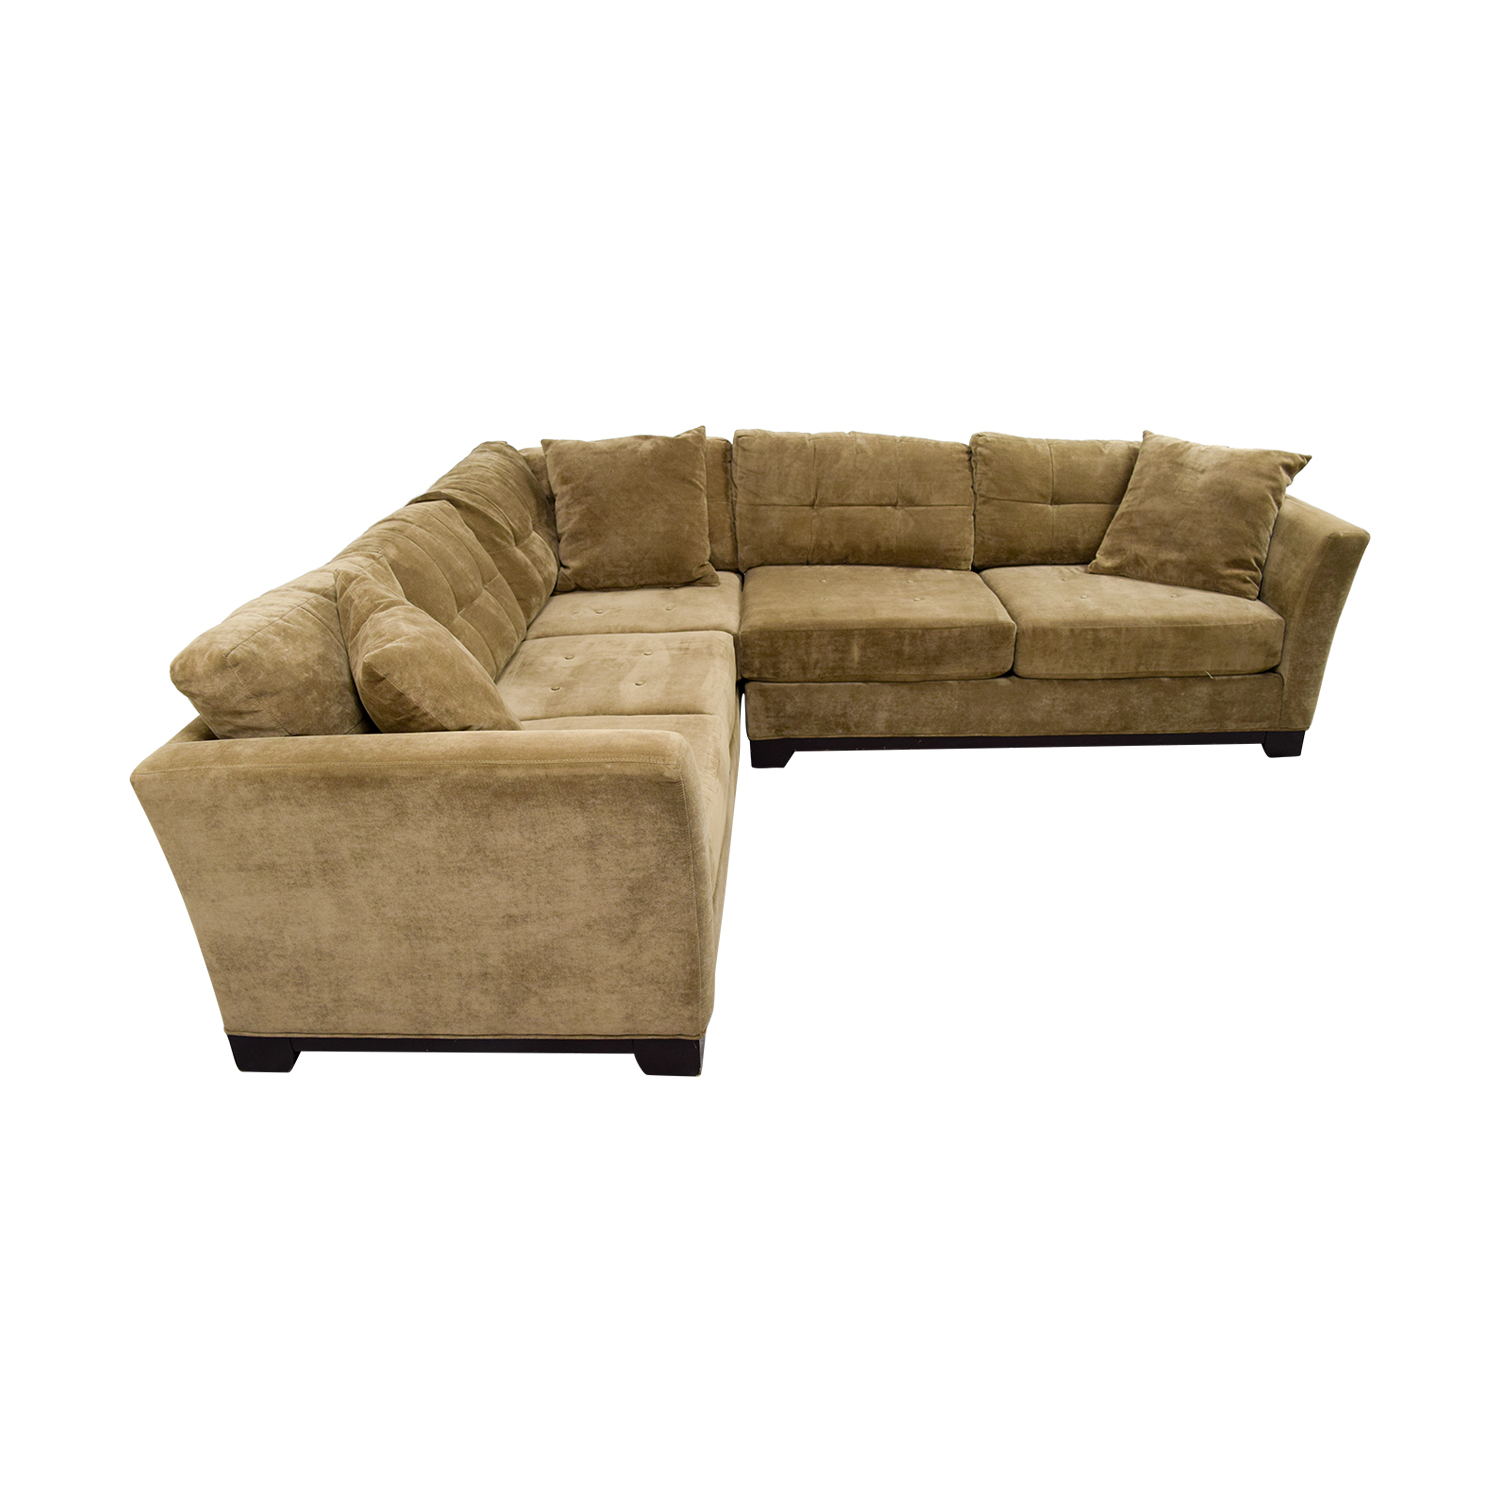 ... Macys Macys Elliot Fabric Microfiber Two Piece Sectional Sofa Price ...